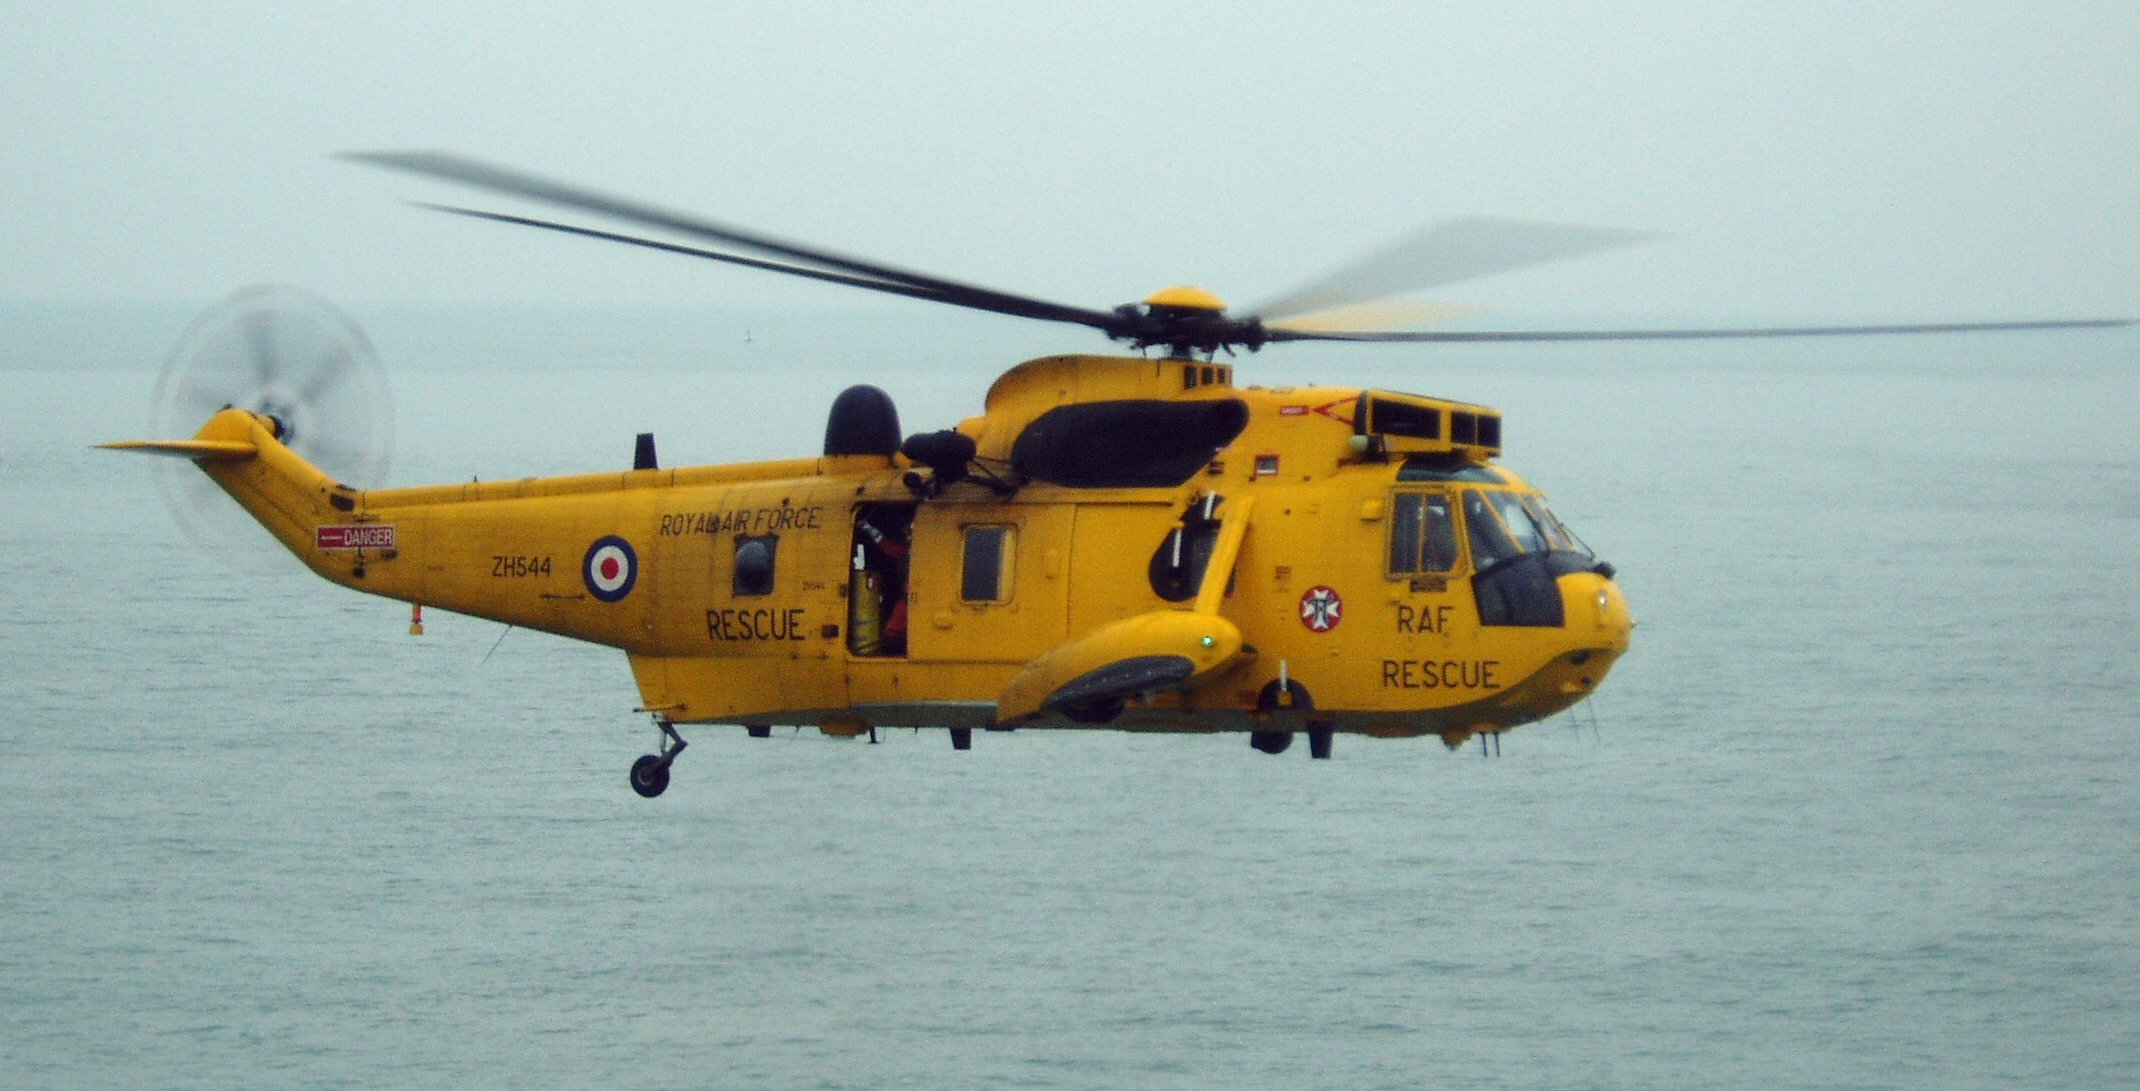 RAF_Rescue_Helicopter.jpg